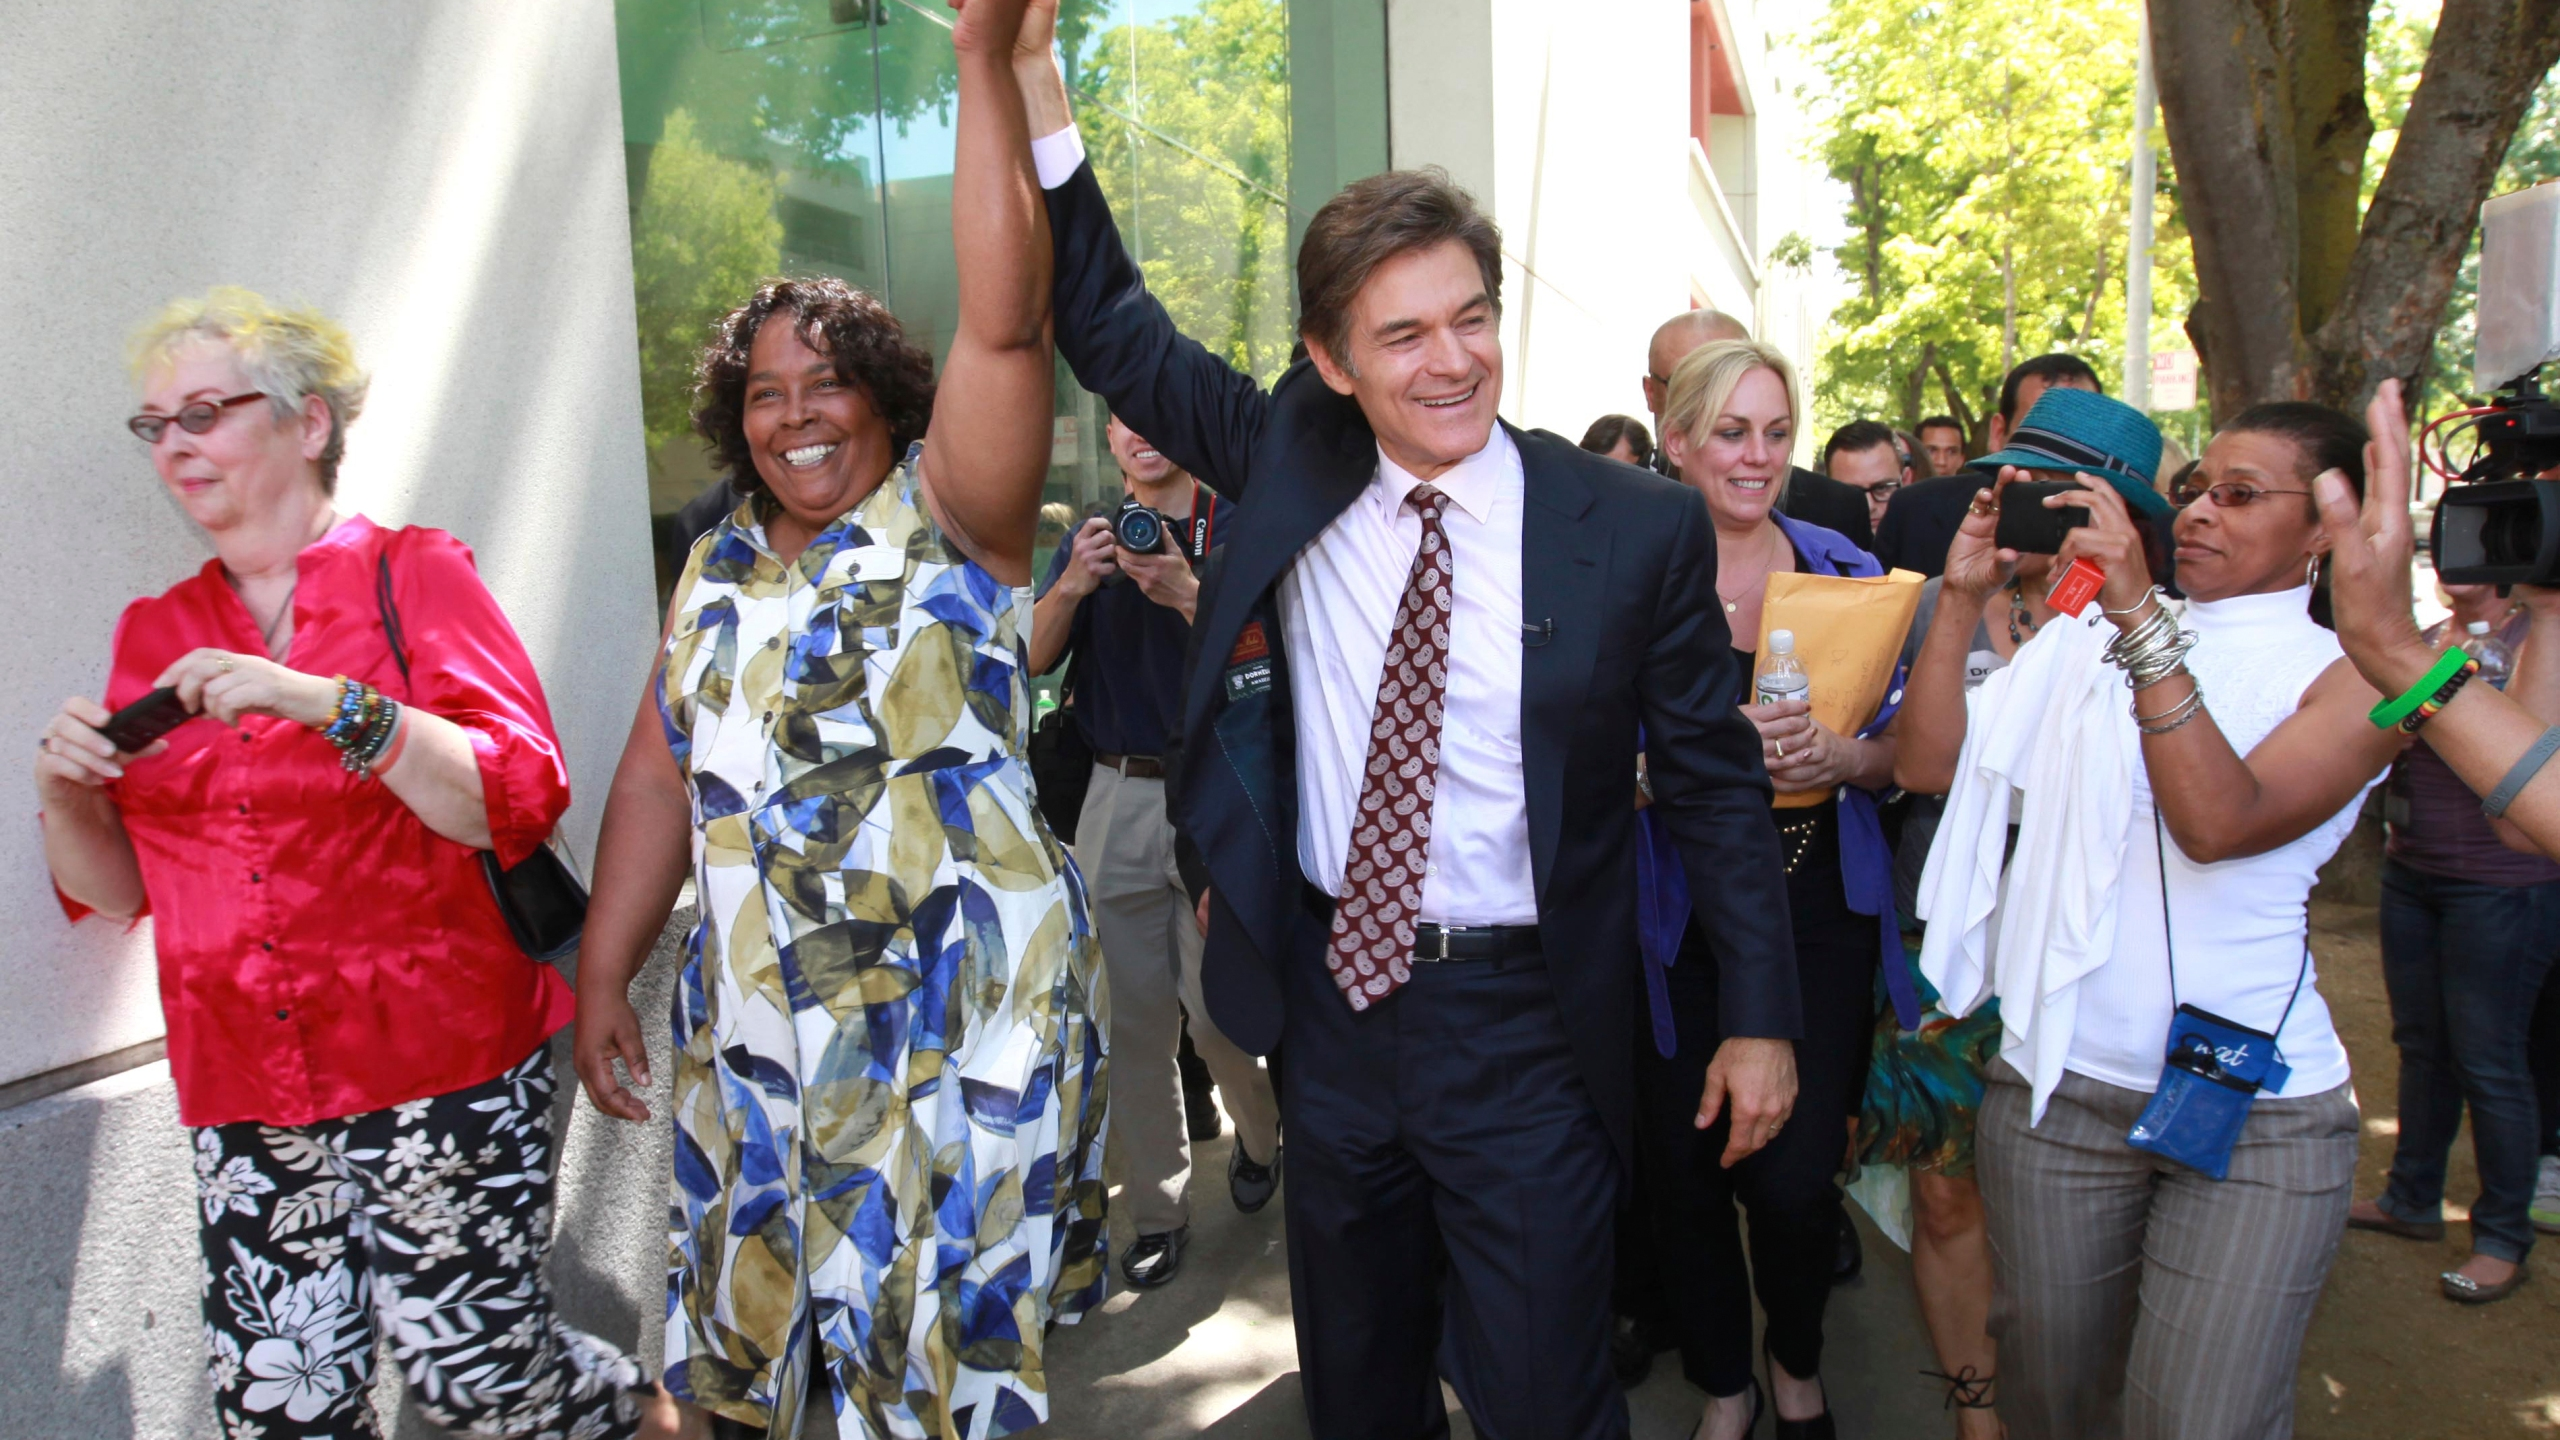 In this April 30, 2012, file photo, Yvonne Walker, president of the Service Employees International Union Local 1000, leads a walk for health with Dr. Mehmet Oz, in downtown in Sacramento, Calif. The president of California's largest state employees union has been ousted from the post she held for 13 years and replaced by a candidate who promises to end the organization's political involvement while bolstering its membership, according to results from a low-turnout election posted by the union. Under Walker's leadership since 2008, SEIU Local 1000 was a thorn in the side of the state's last Republican governor, Arnold Schwarzenegger, but grudgingly negotiated other austerity moves with his two Democratic successors. (AP Photo/Rich Pedroncelli, File)